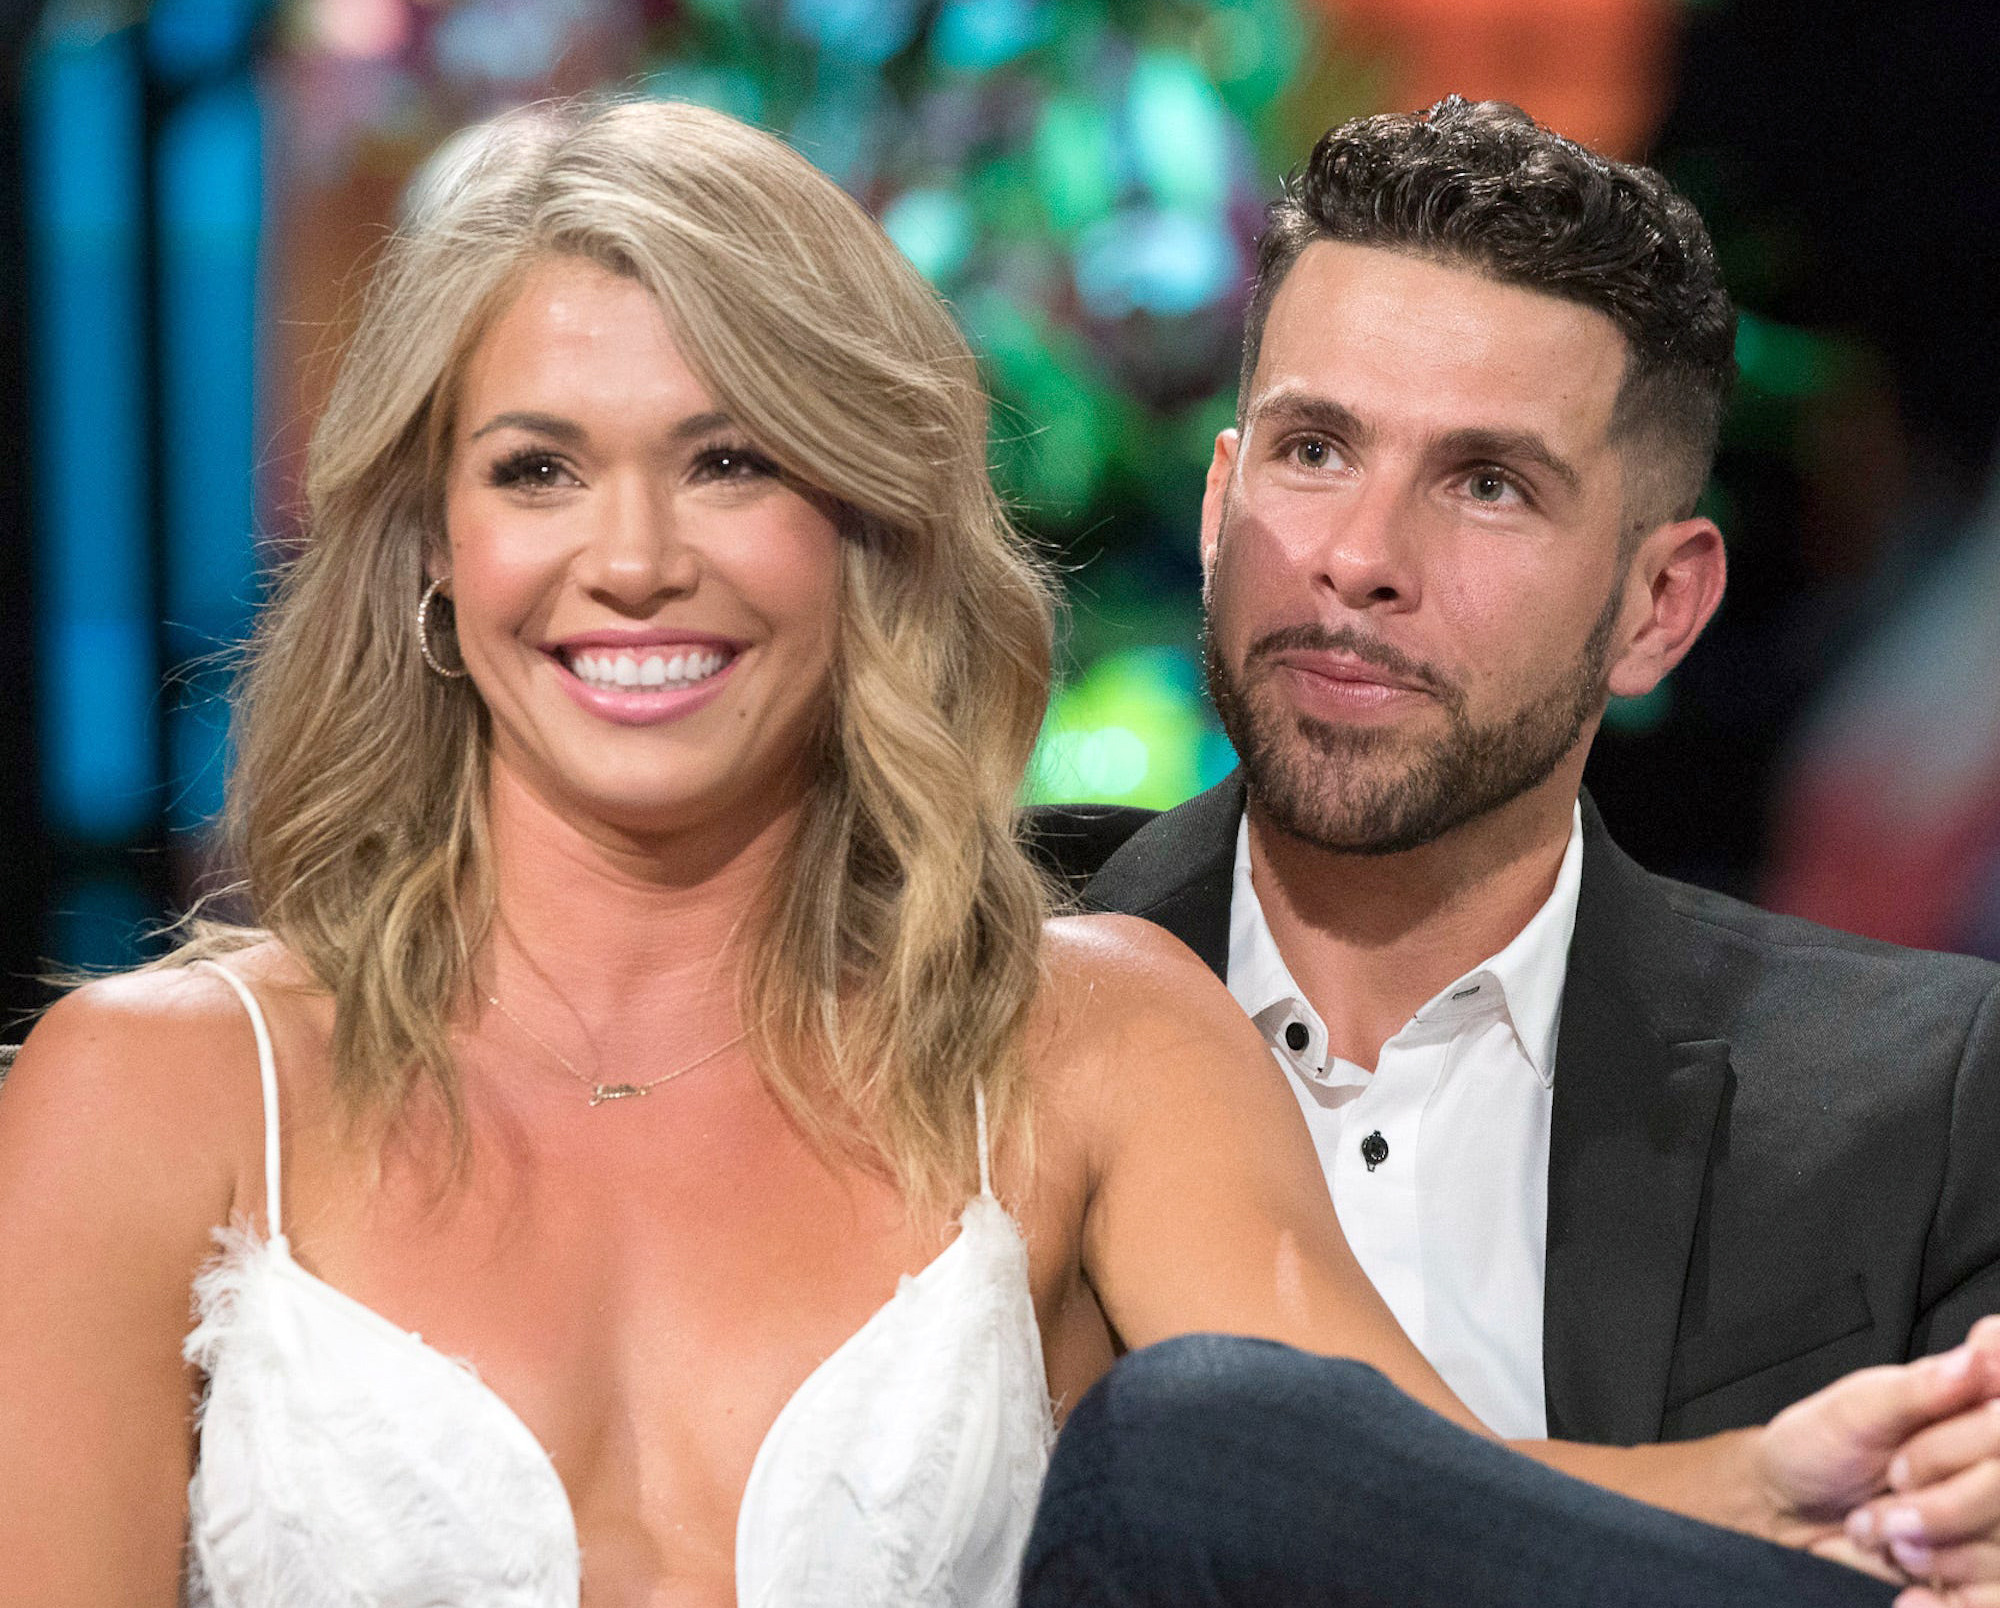 'Bachelor in Paradise' couple split before 8-month mark